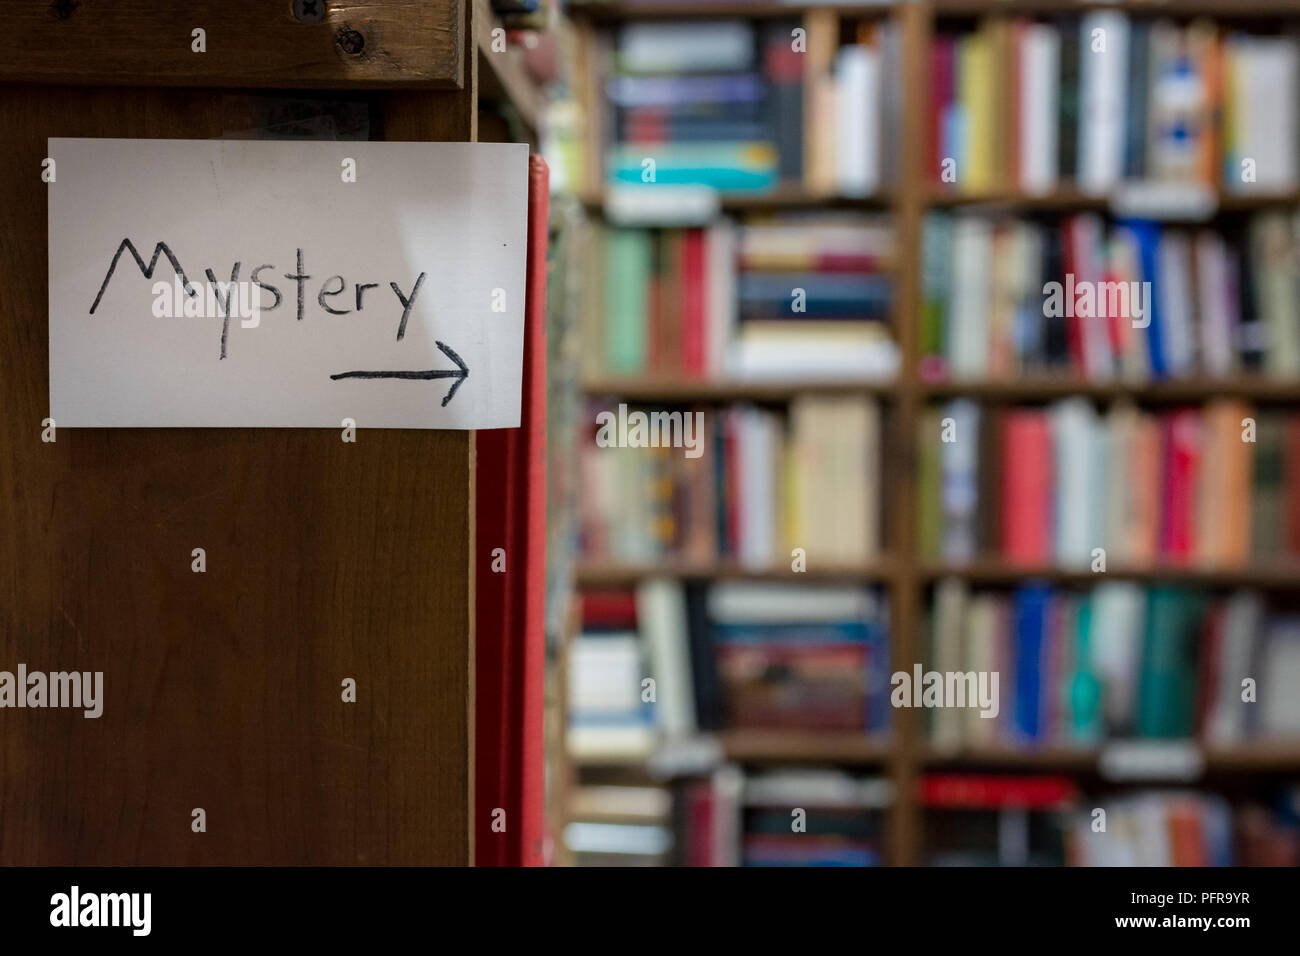 Mystery Book Shelves This Way hand written note - Stock Image